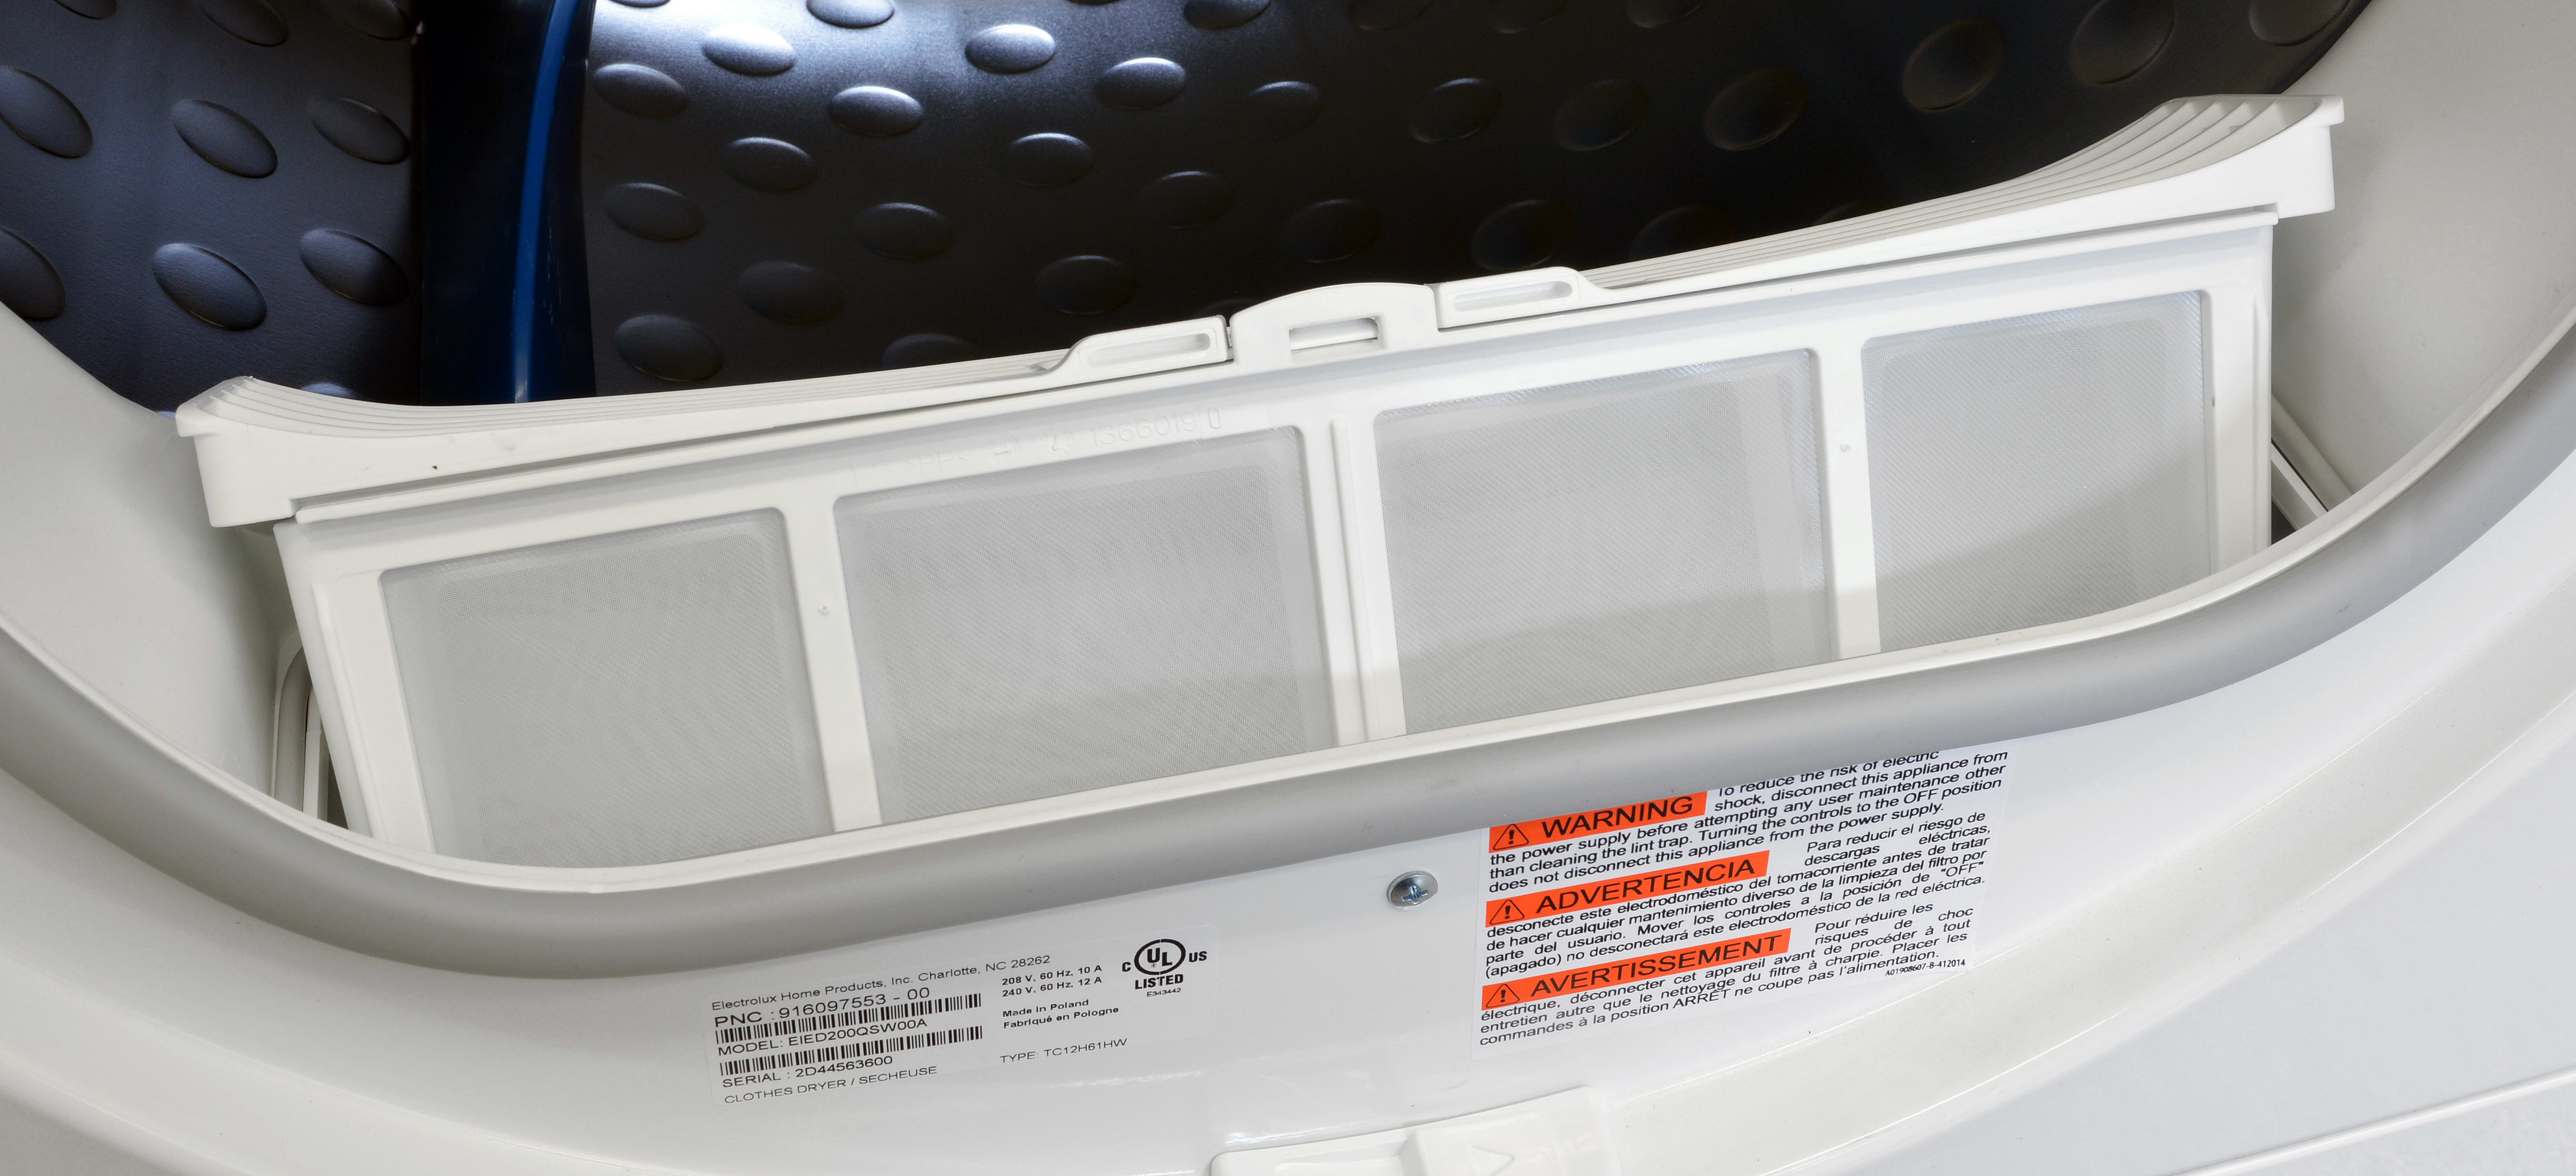 The Electrolux EIED200QSW uses a small basket instead of a screen for catching lint.